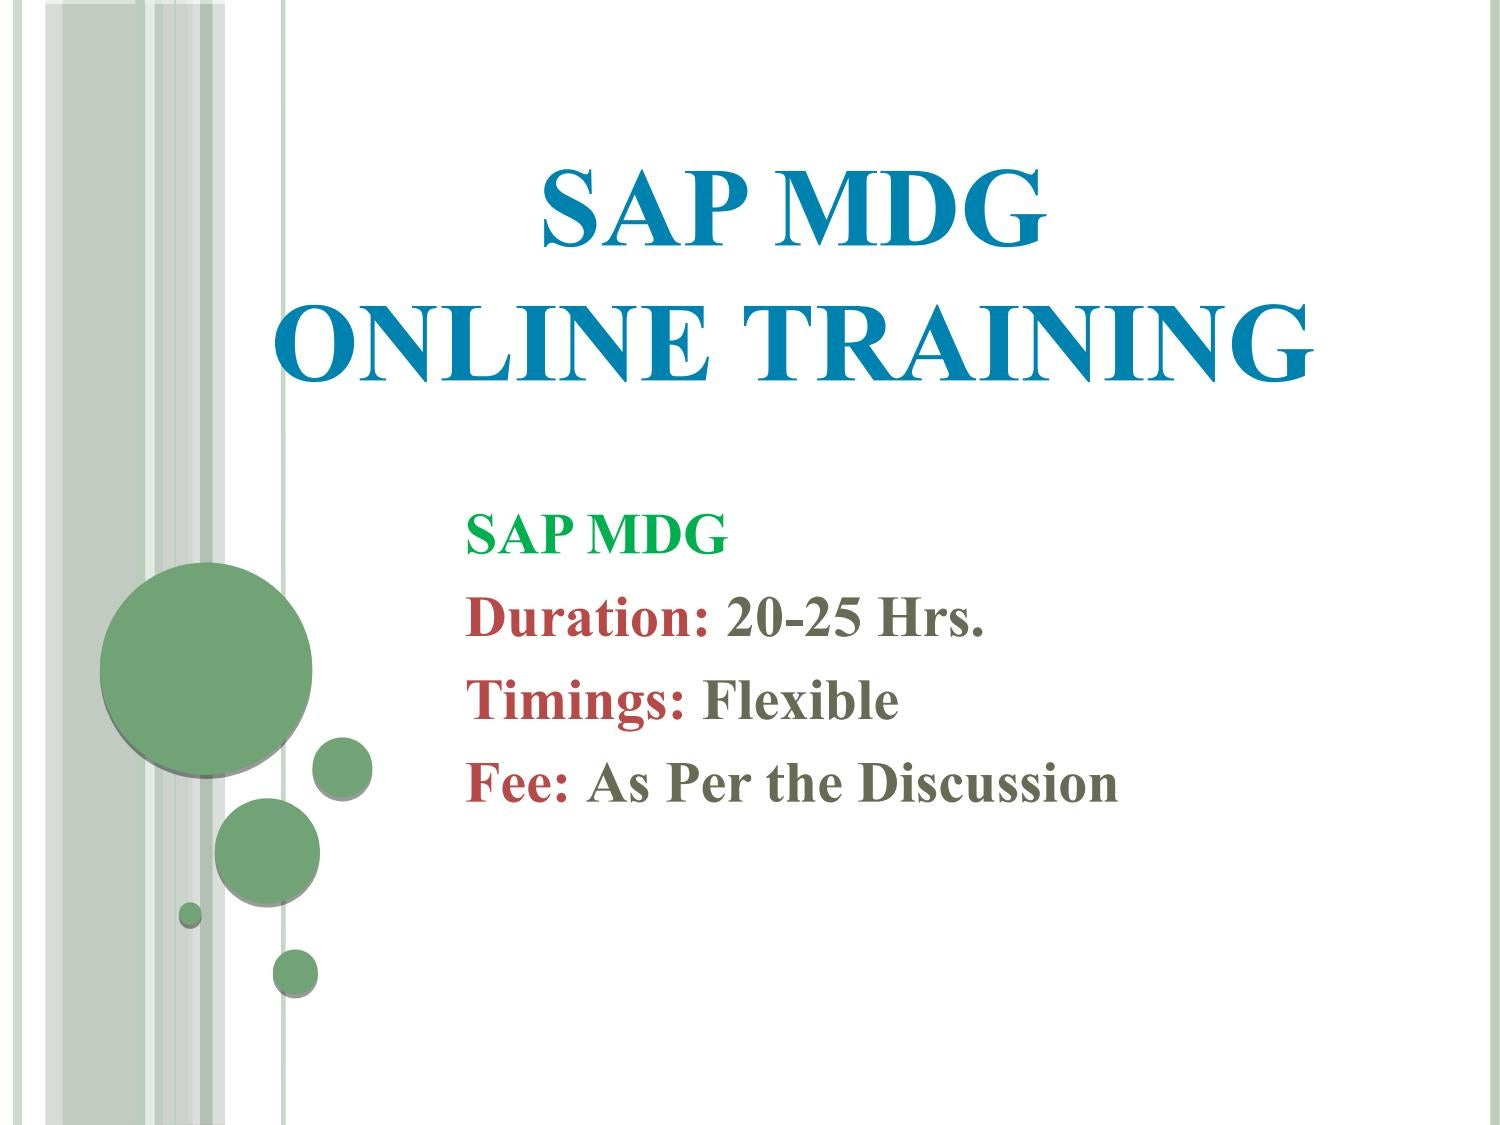 SAP Master Data Management PPT by shruti allentics - issuu